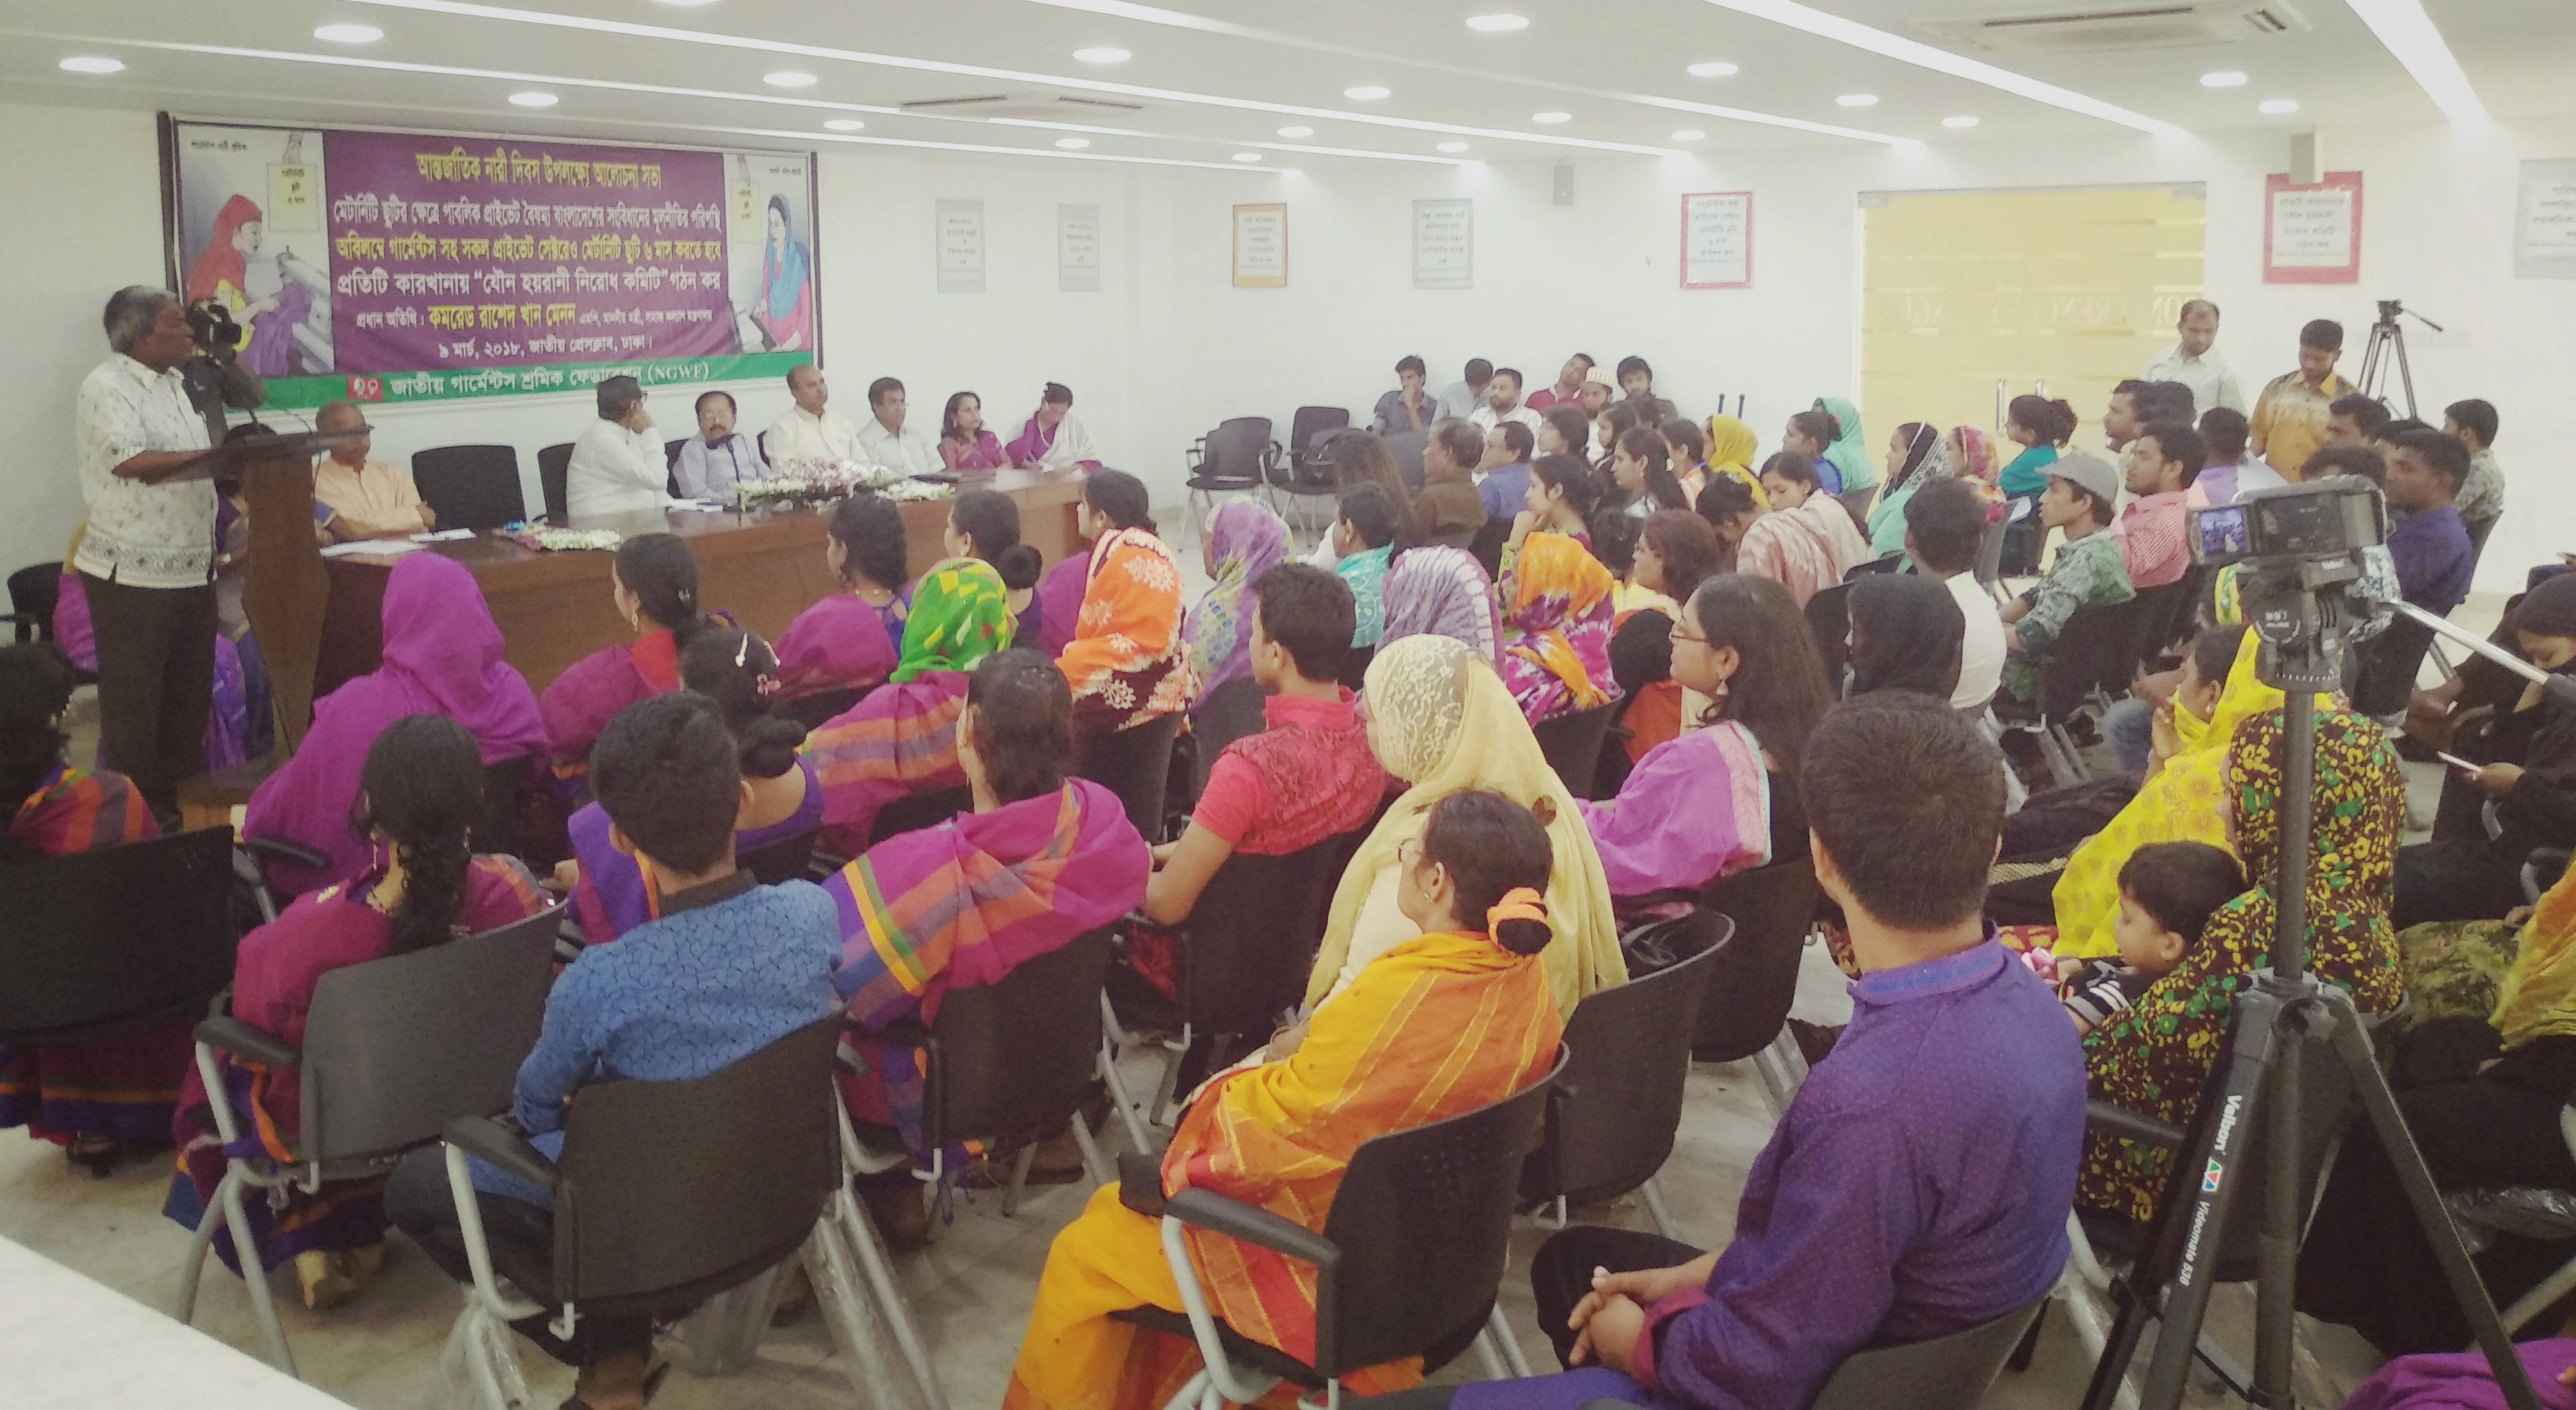 International women's Day Celebration by National Garment Workers Federation (NGWF)